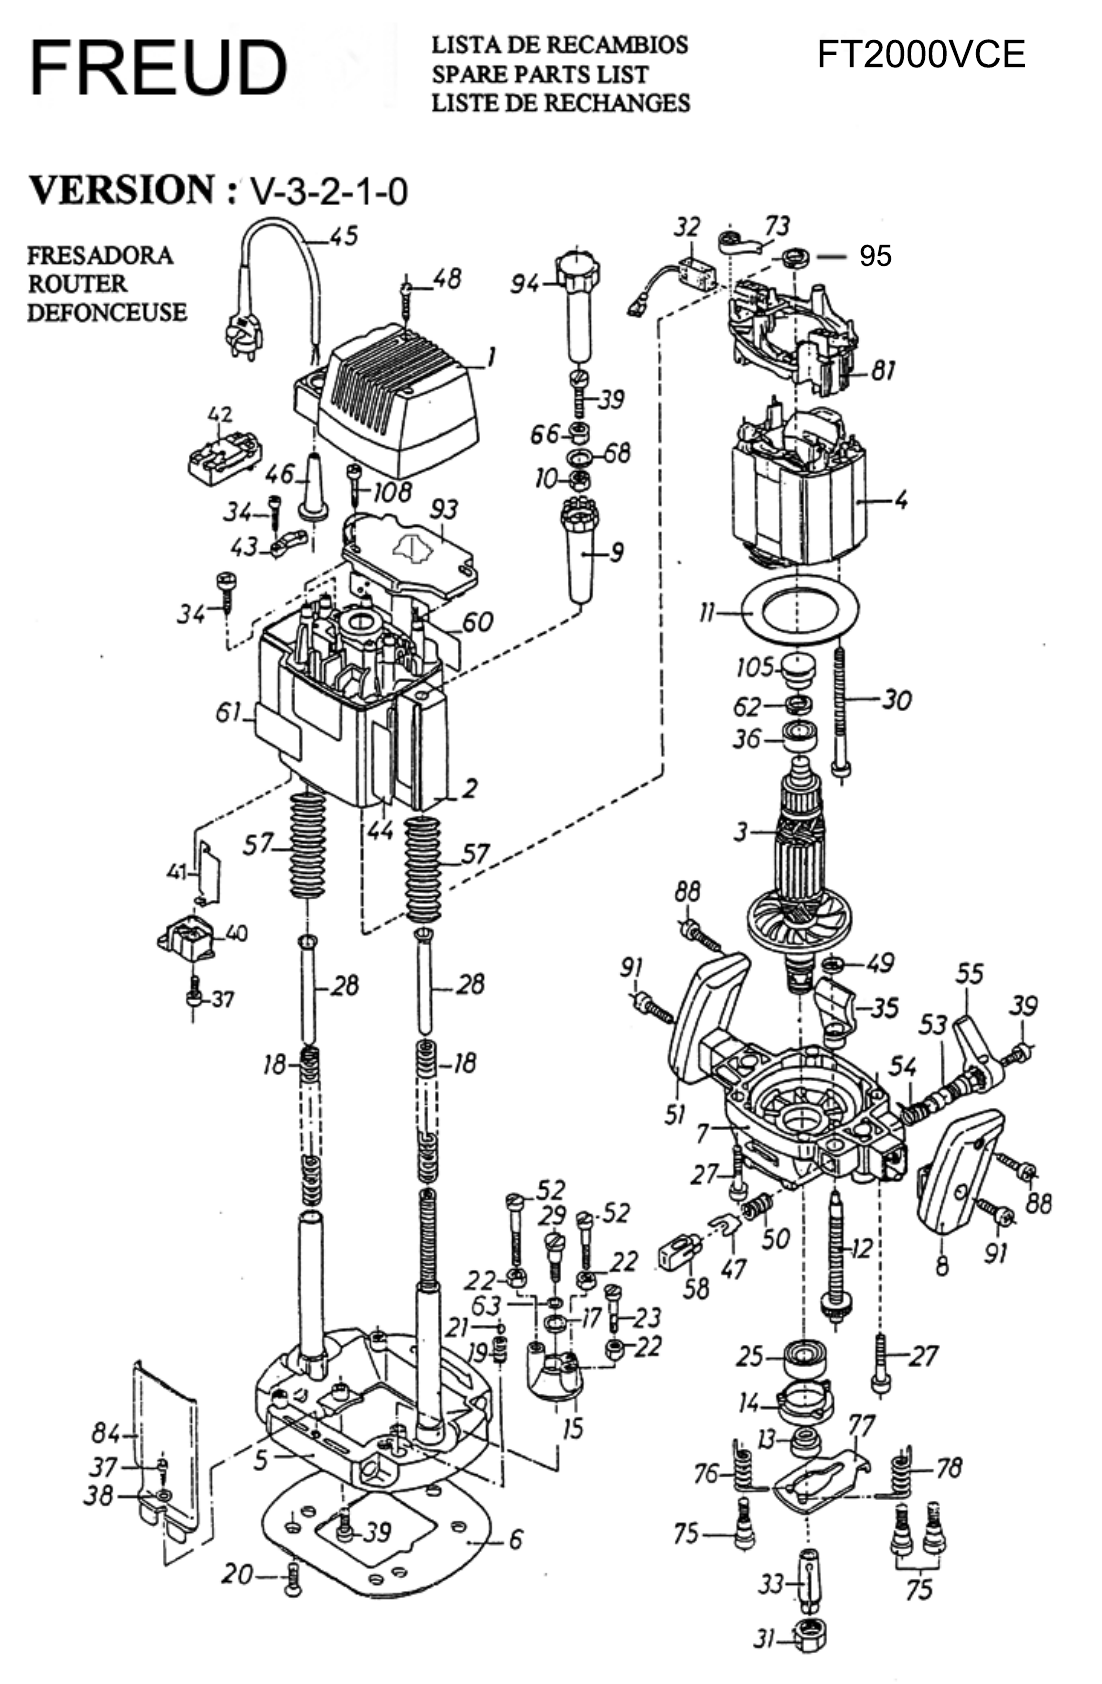 126523070753327454 in addition RepairGuideContent furthermore Pet Protection For Cars furthermore OEMCarb besides Frigidaire Electric Dryer Parts Diagram. on 1 2200 belt